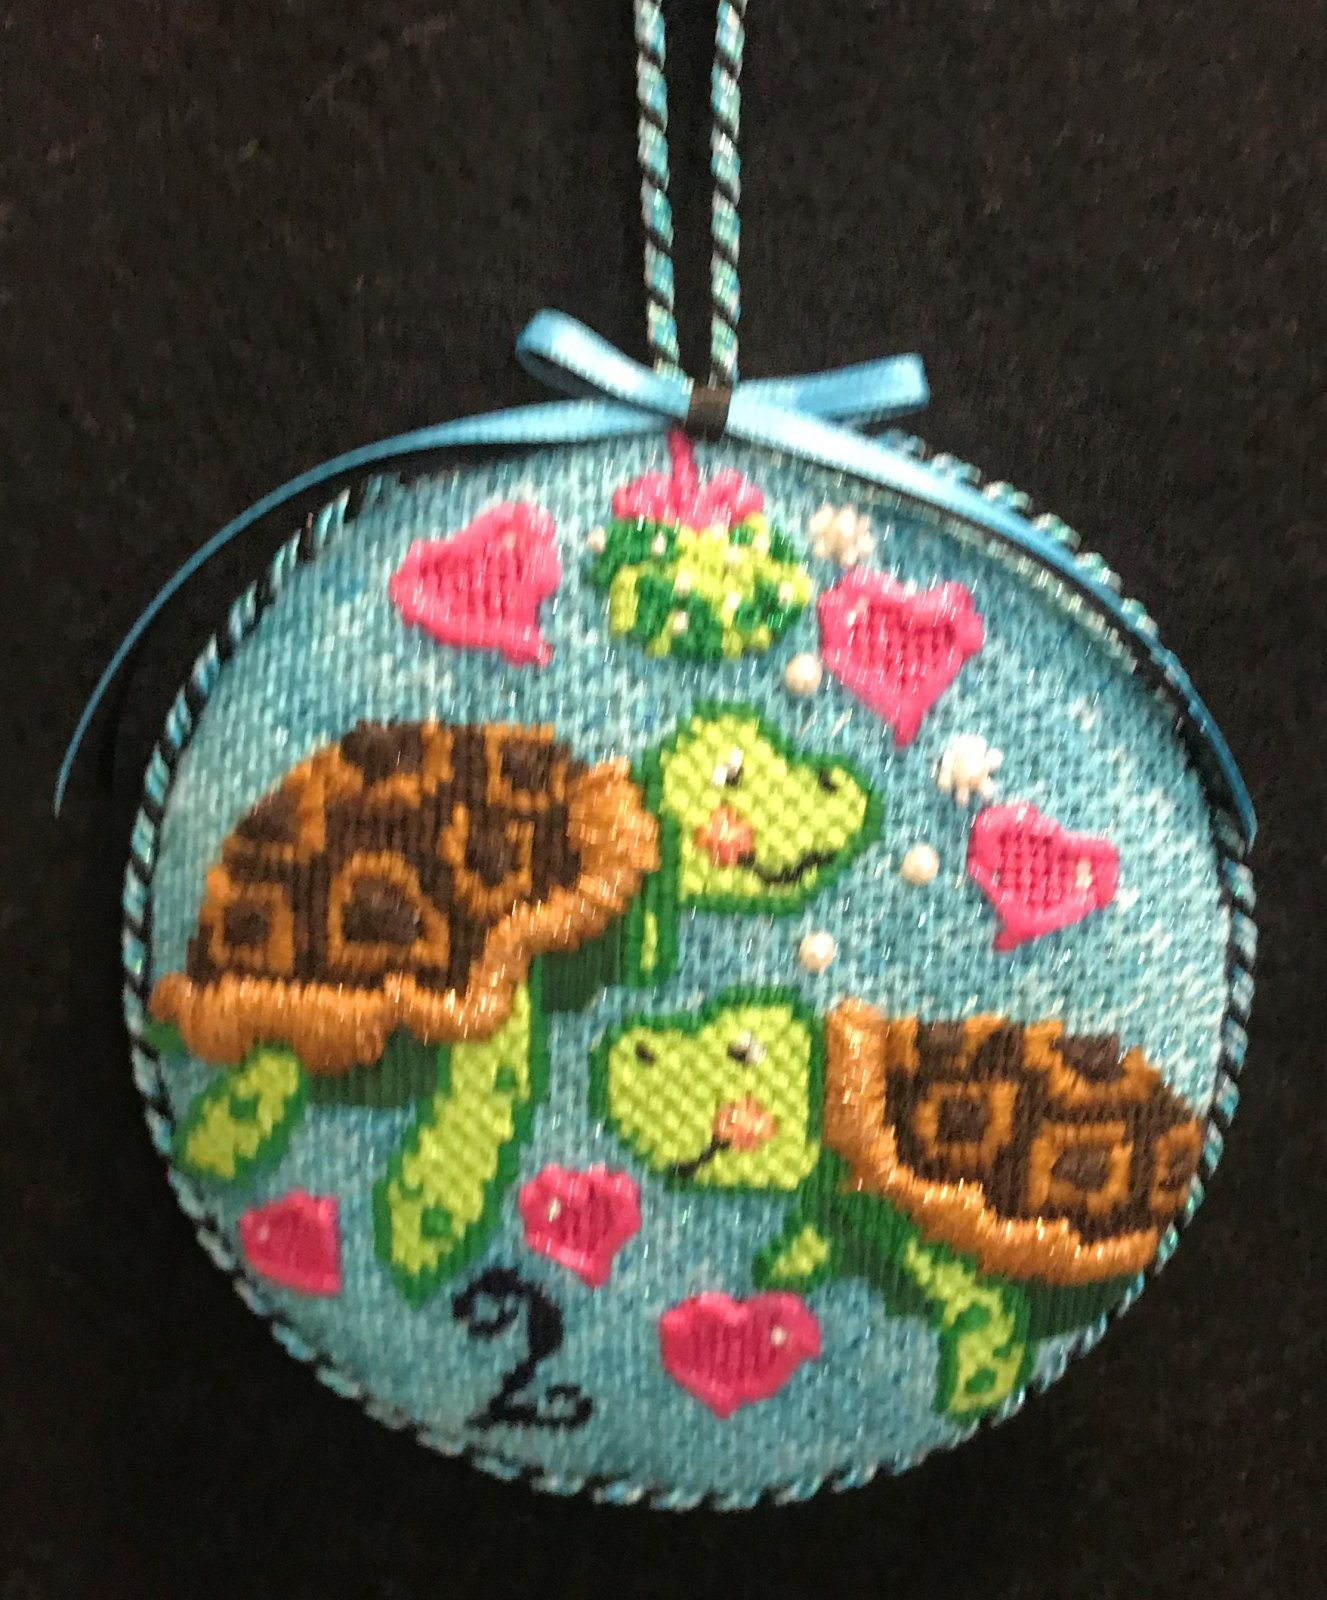 #2 Turtles Ornament - stitched by Stacey G.